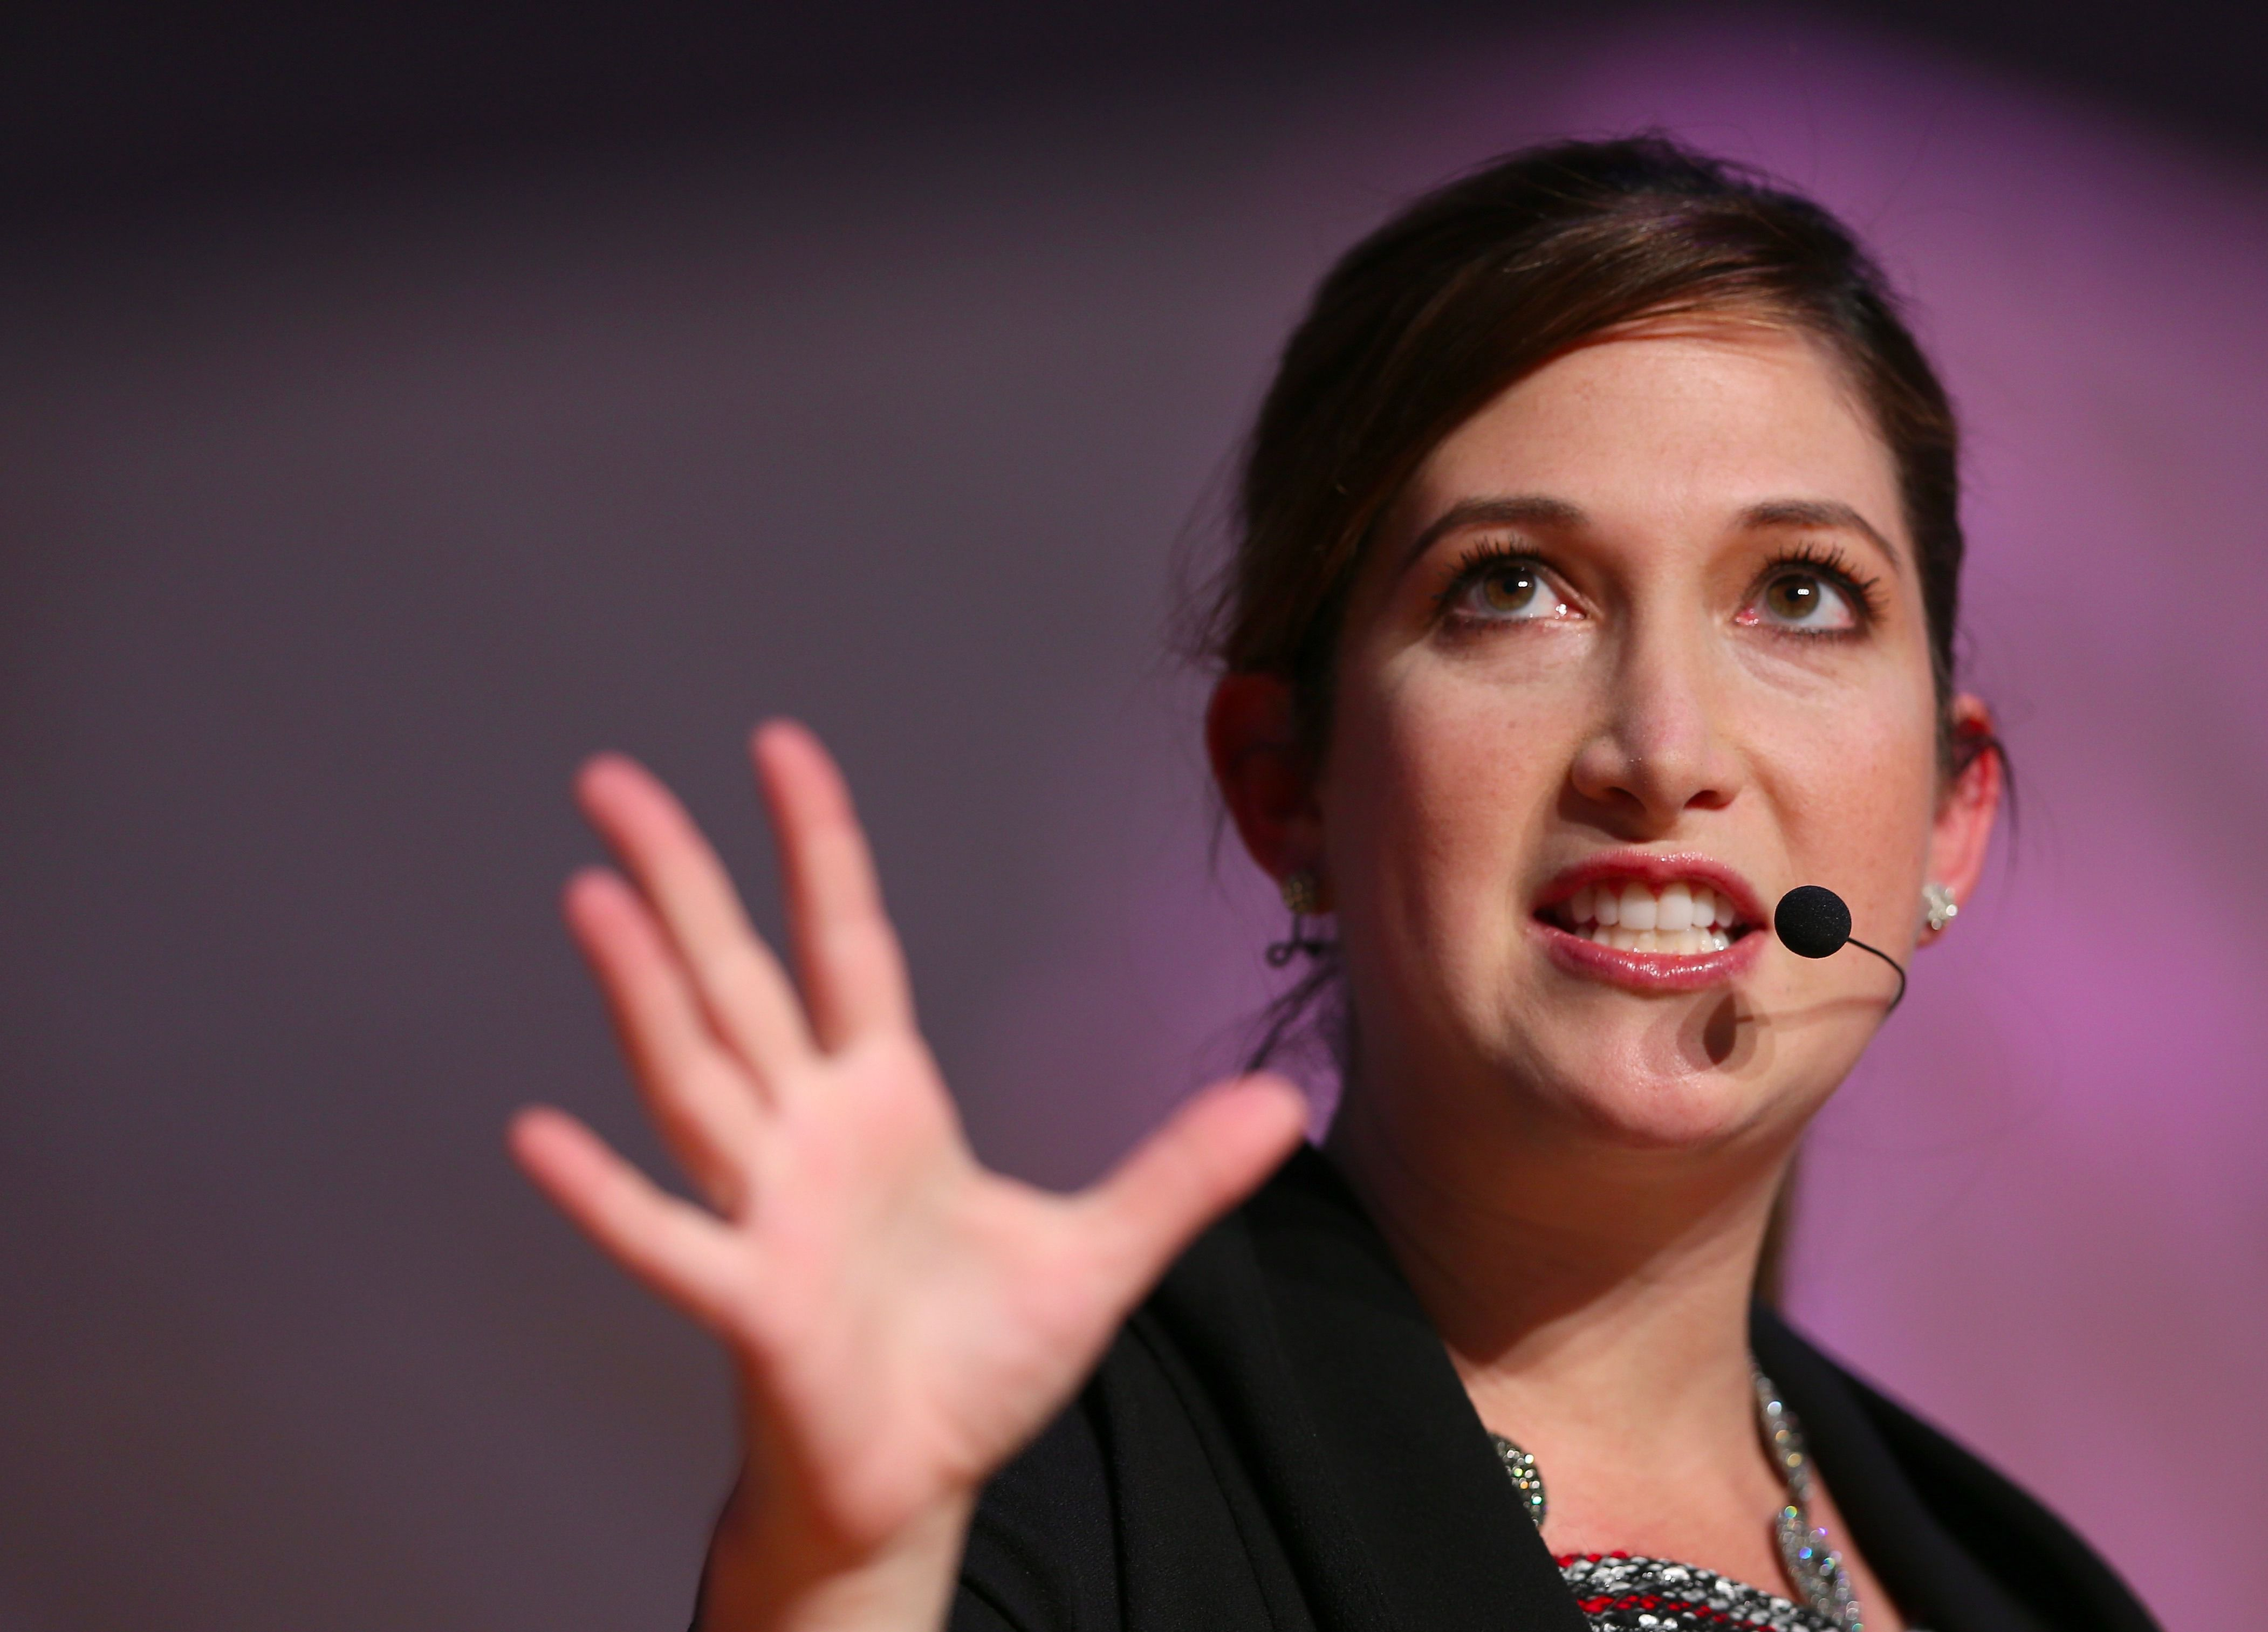 Randi Zuckerberg Wikipedia >> Randi Zuckerberg Biography Wiki Business Personal Life Facebook